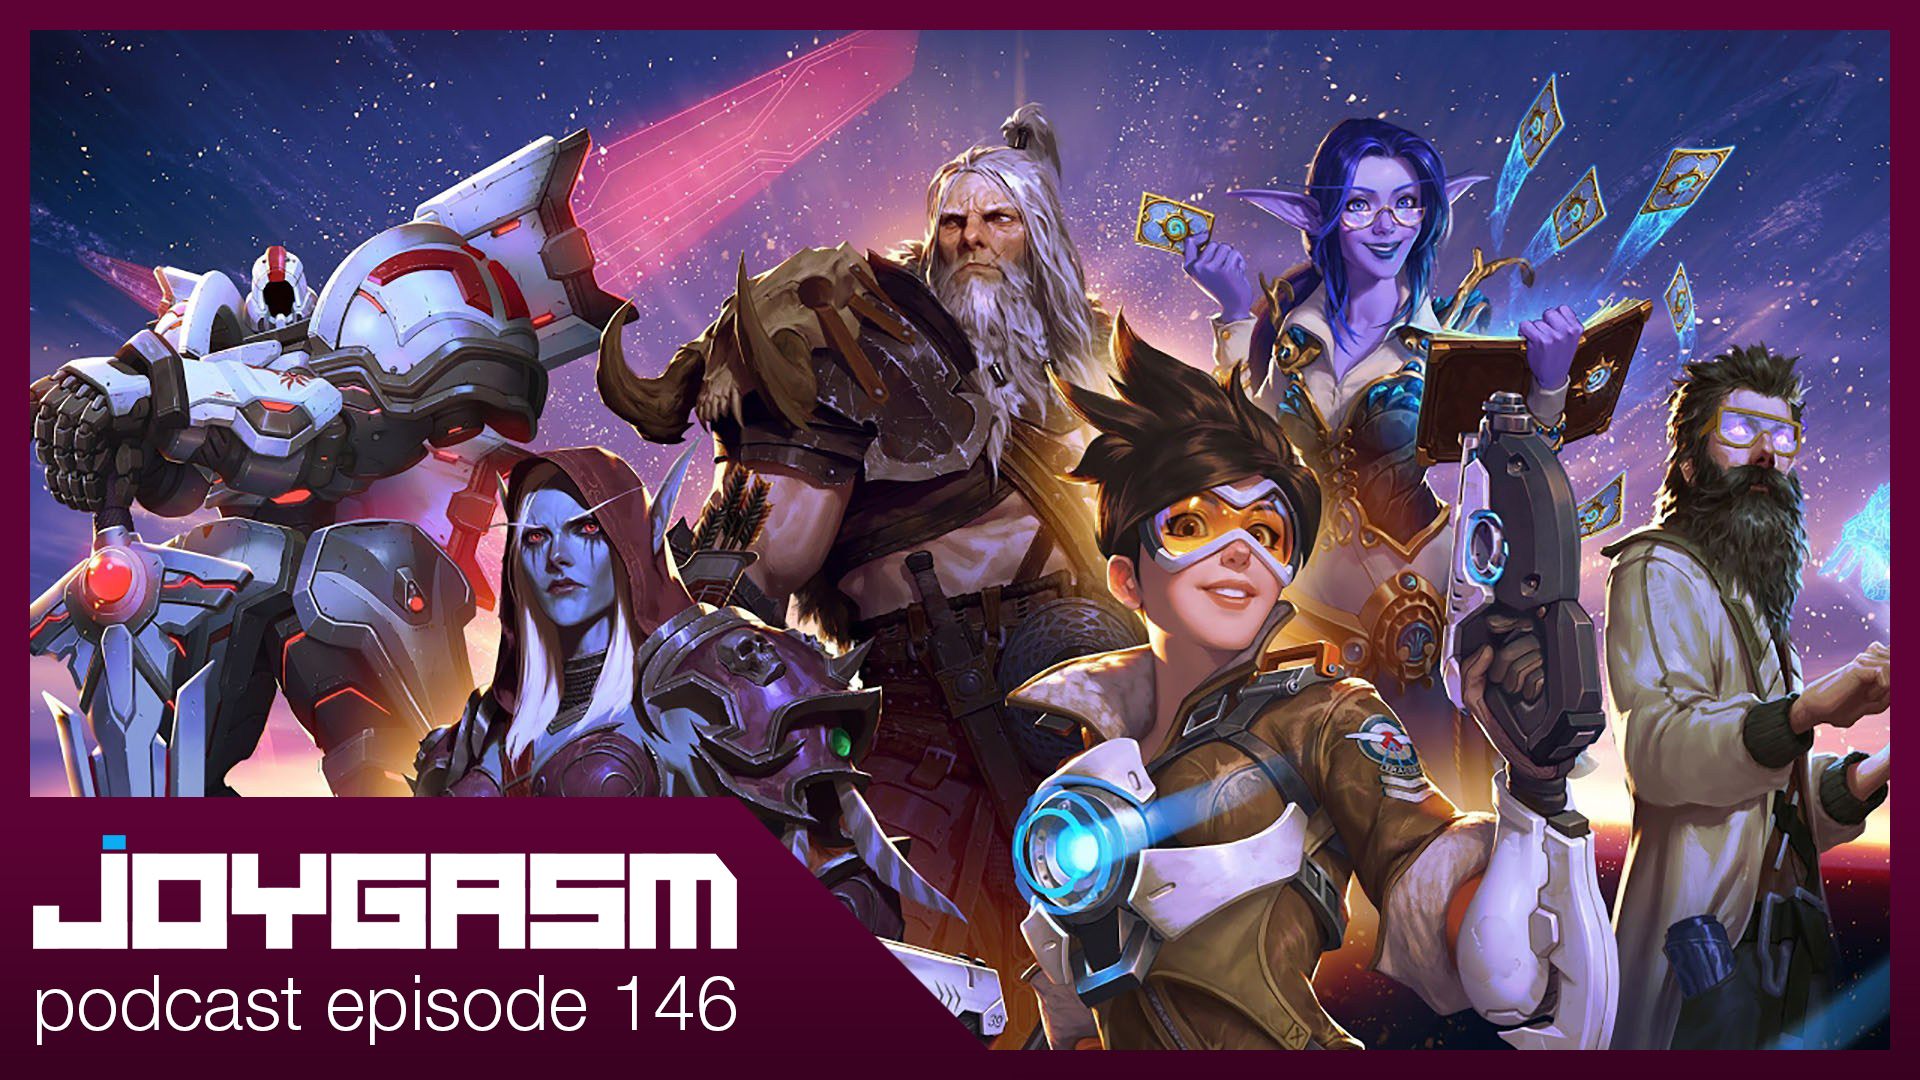 Ep. 146: Blizzcon 2019, Overwatch 2, Diablo 4, World Of Warcraft Shadowkeep, & More